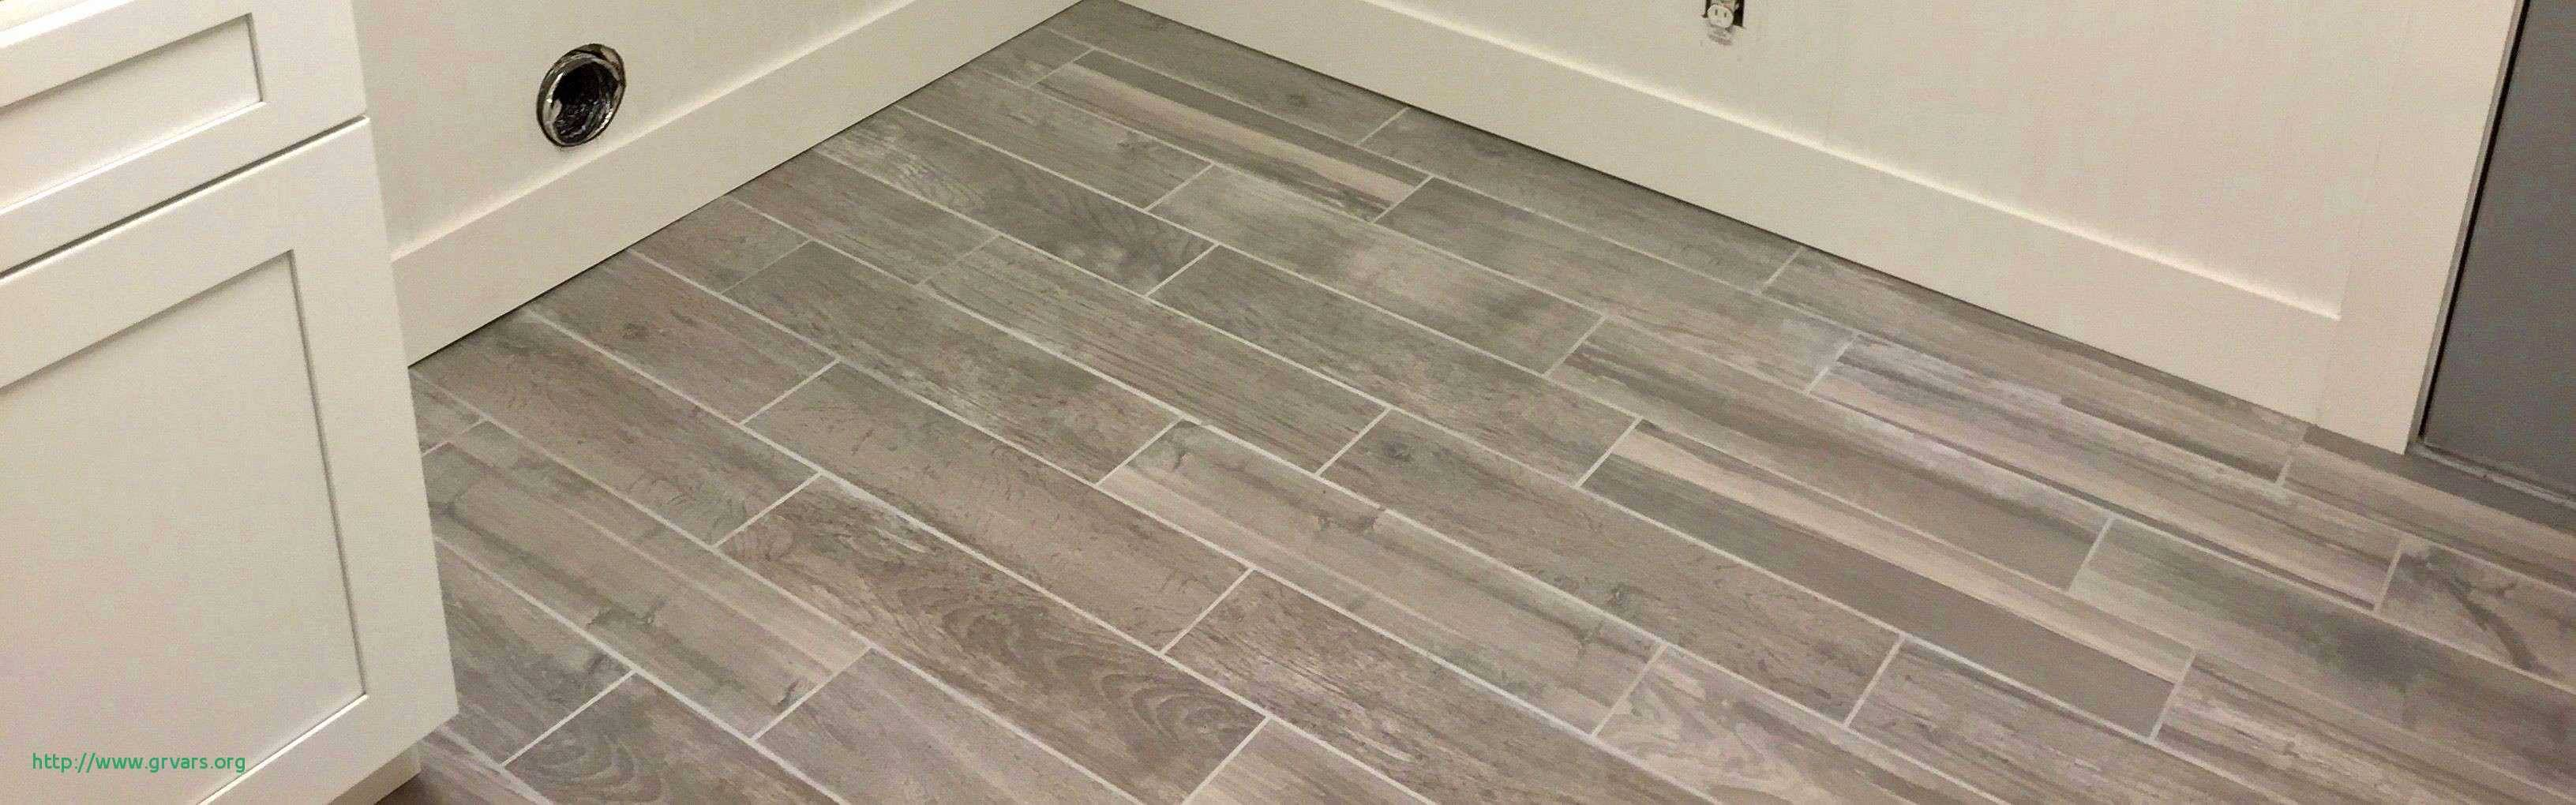 hardwood floor cleaner mop of 22 ac289lagant what can i clean hardwood floors with ideas blog with regard to unique bathroom tiling ideas best h sink install bathroom i 0d exciting beautiful